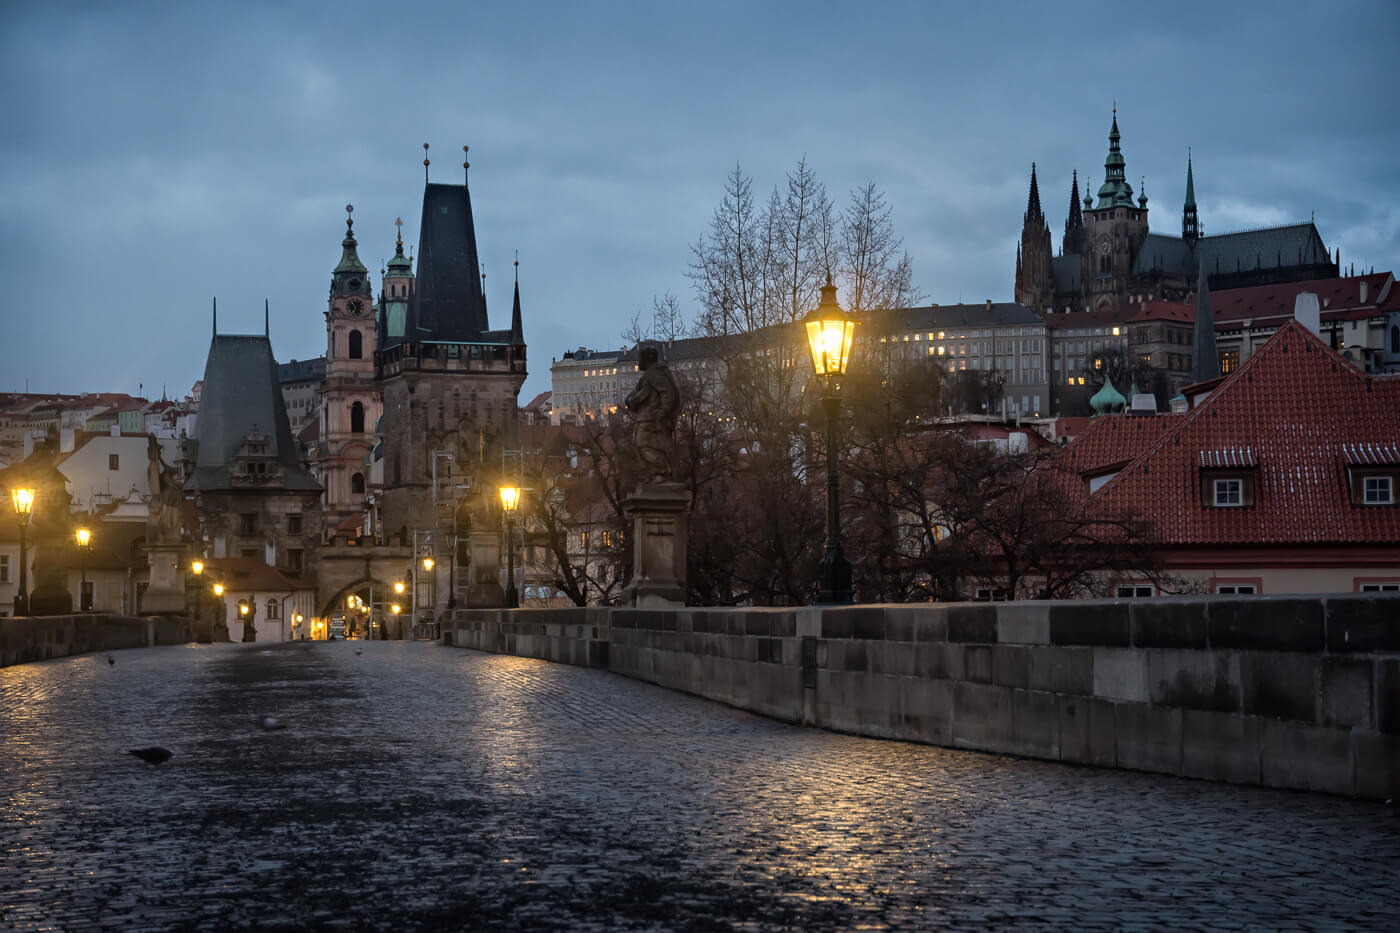 Charles Bridge, Prague - Photograph by Zdenek Sindelar / CuriousZed